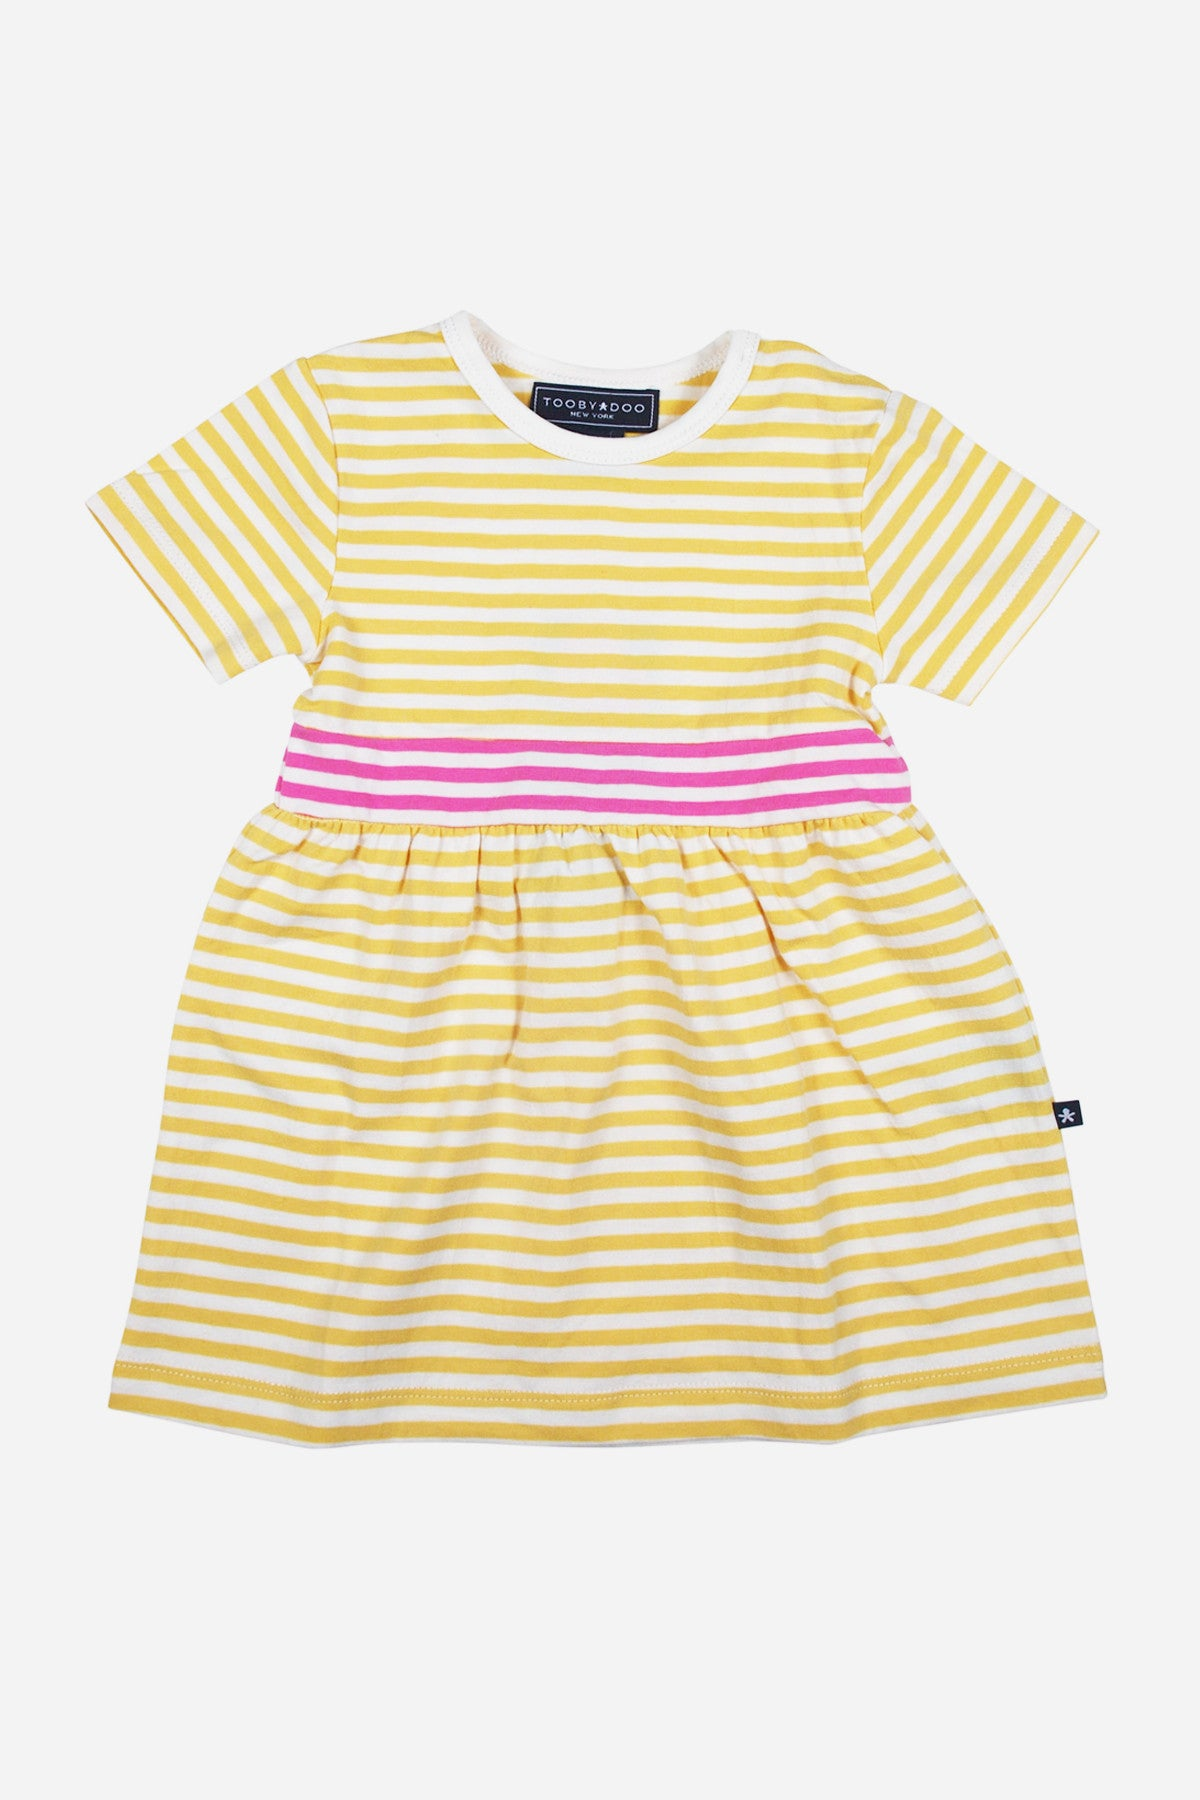 e73c812e1c Toobydoo Yellow Party Girls Dress at Mini Ruby Contemporary ...